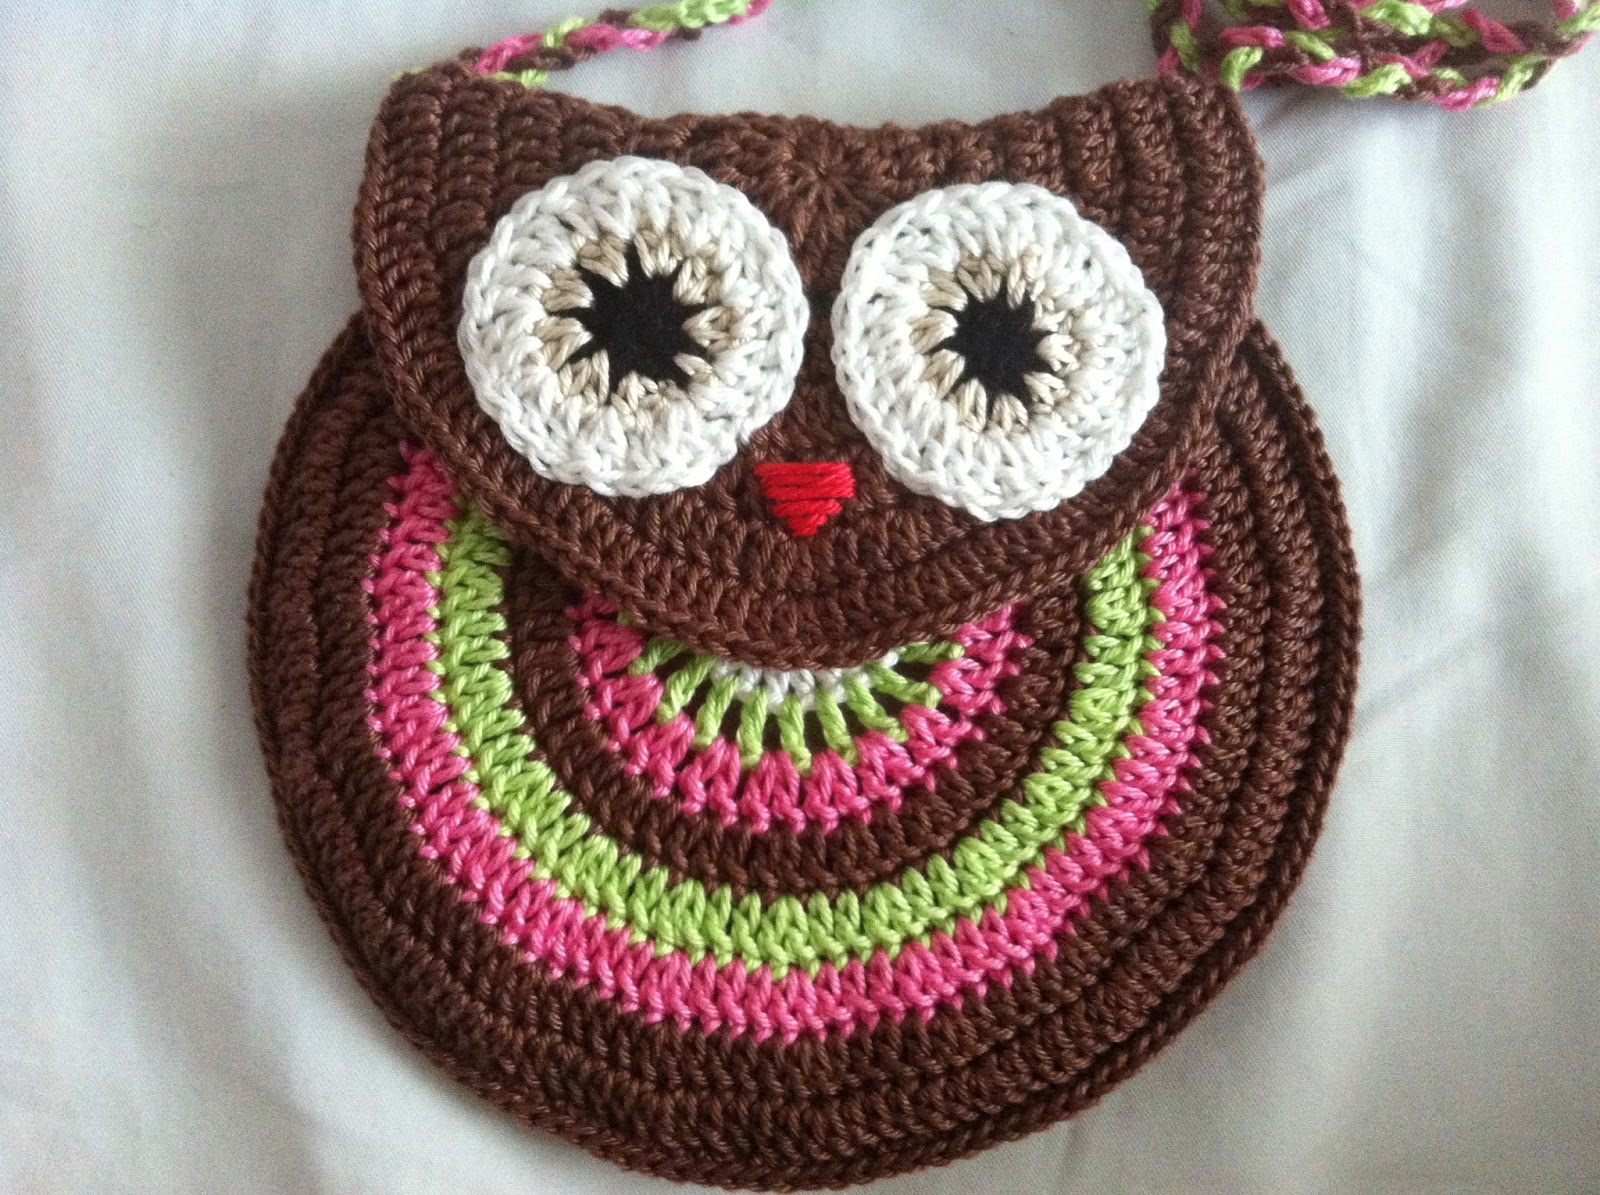 Free Crochet Patterns For Purses : 12 free crochet bag patterns Car Pictures